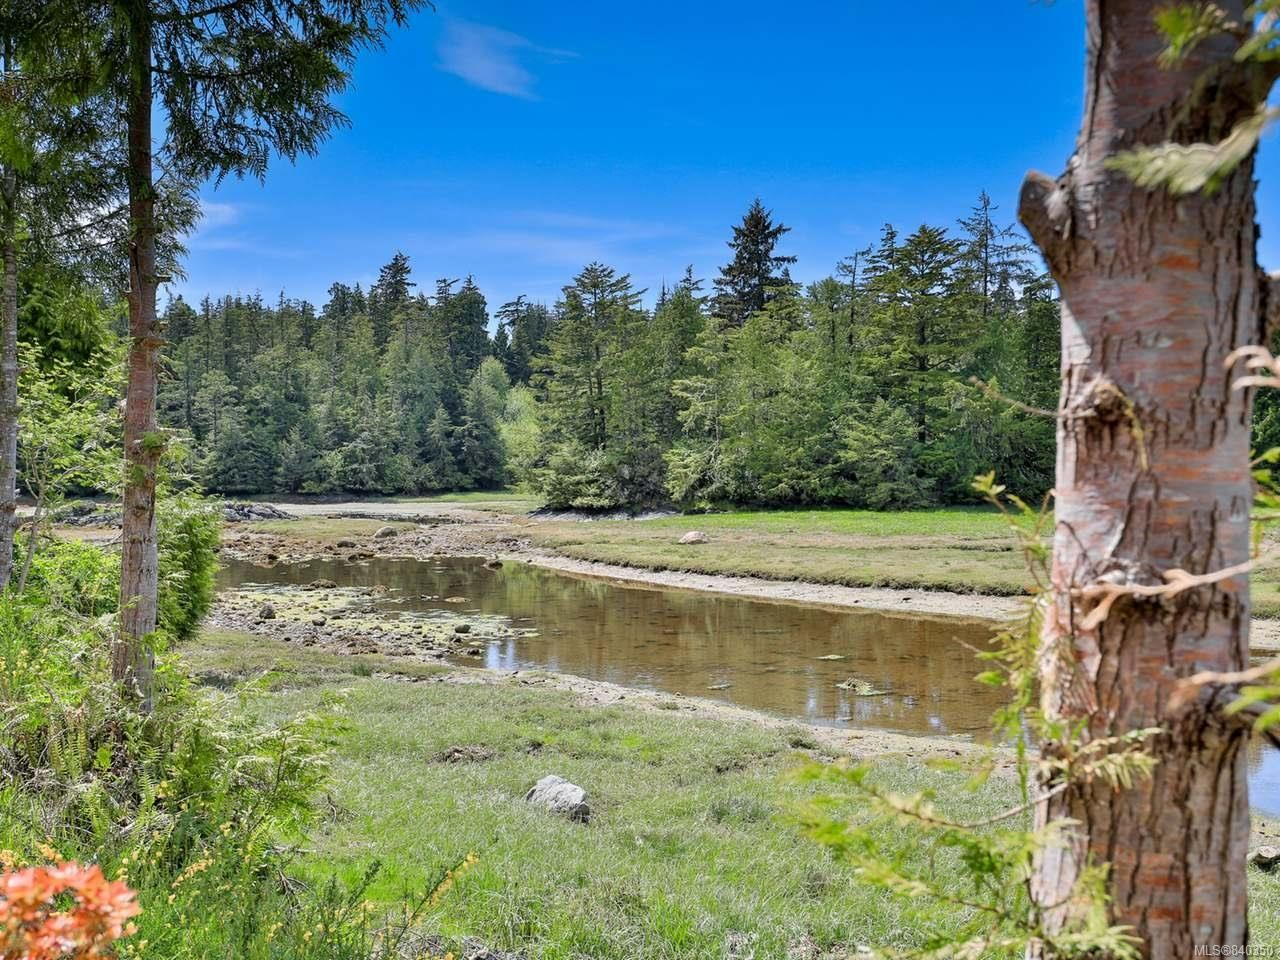 Photo 79: Photos: 1068 Helen Rd in UCLUELET: PA Ucluelet House for sale (Port Alberni)  : MLS®# 840350